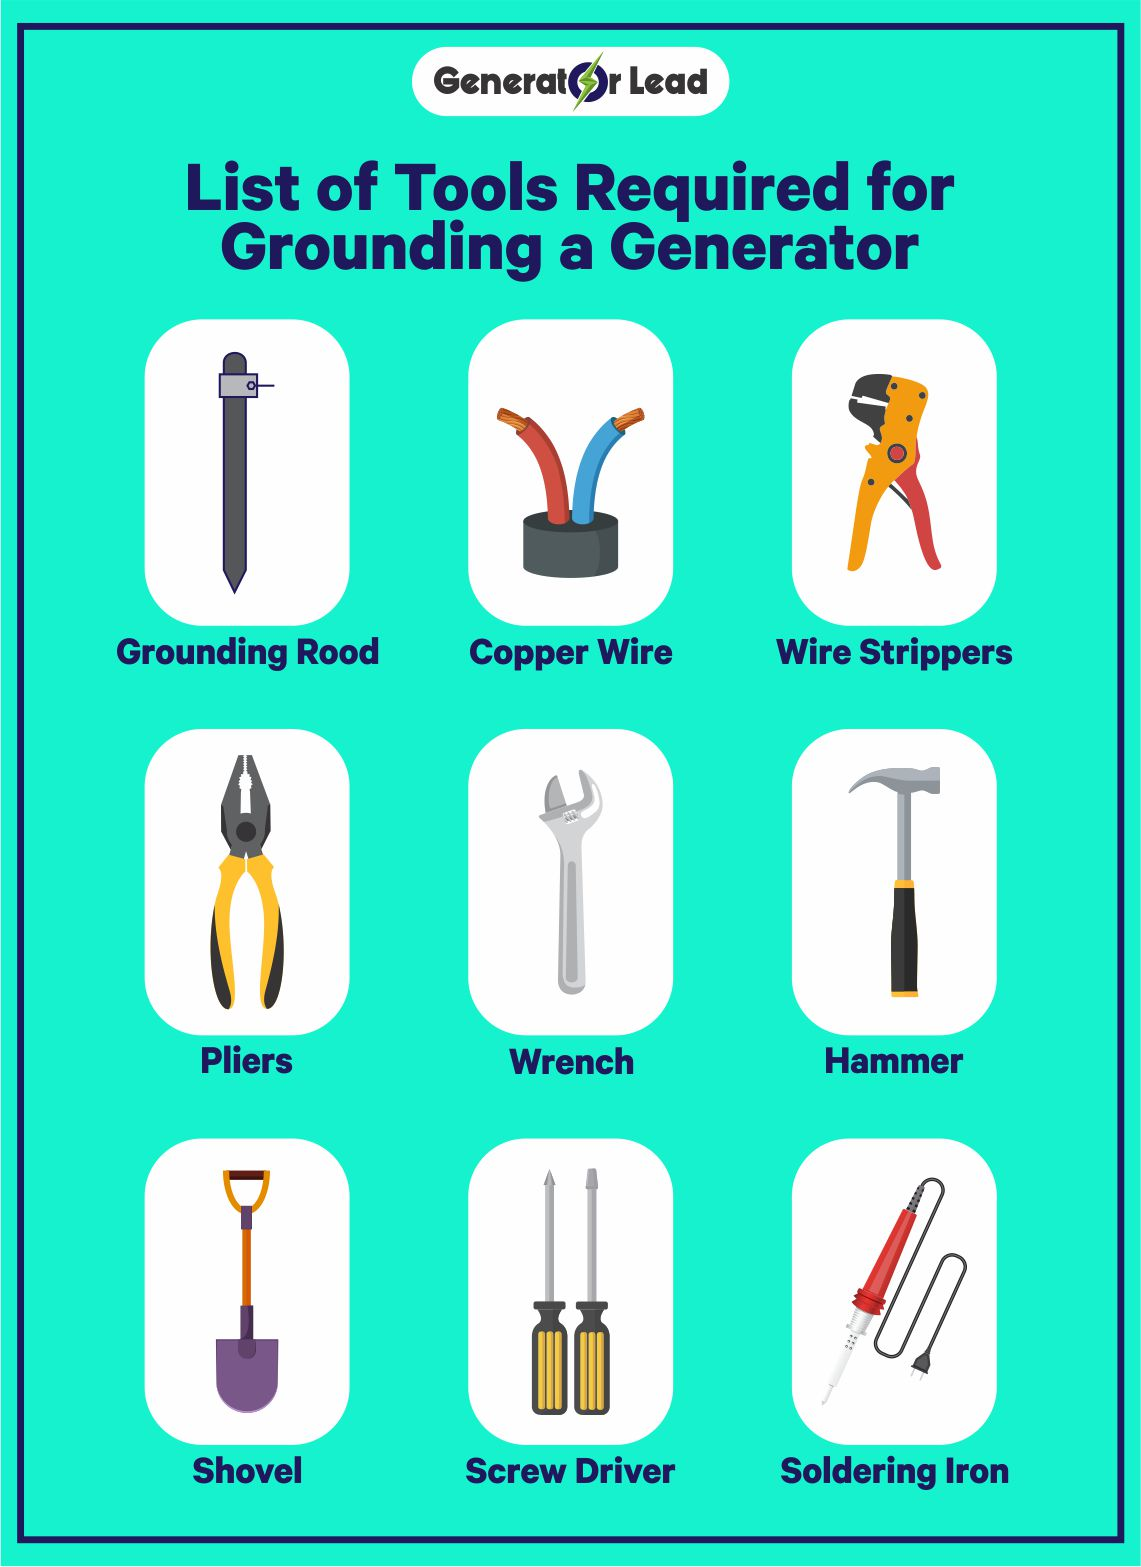 List of Tools Required for Grounding a Generator